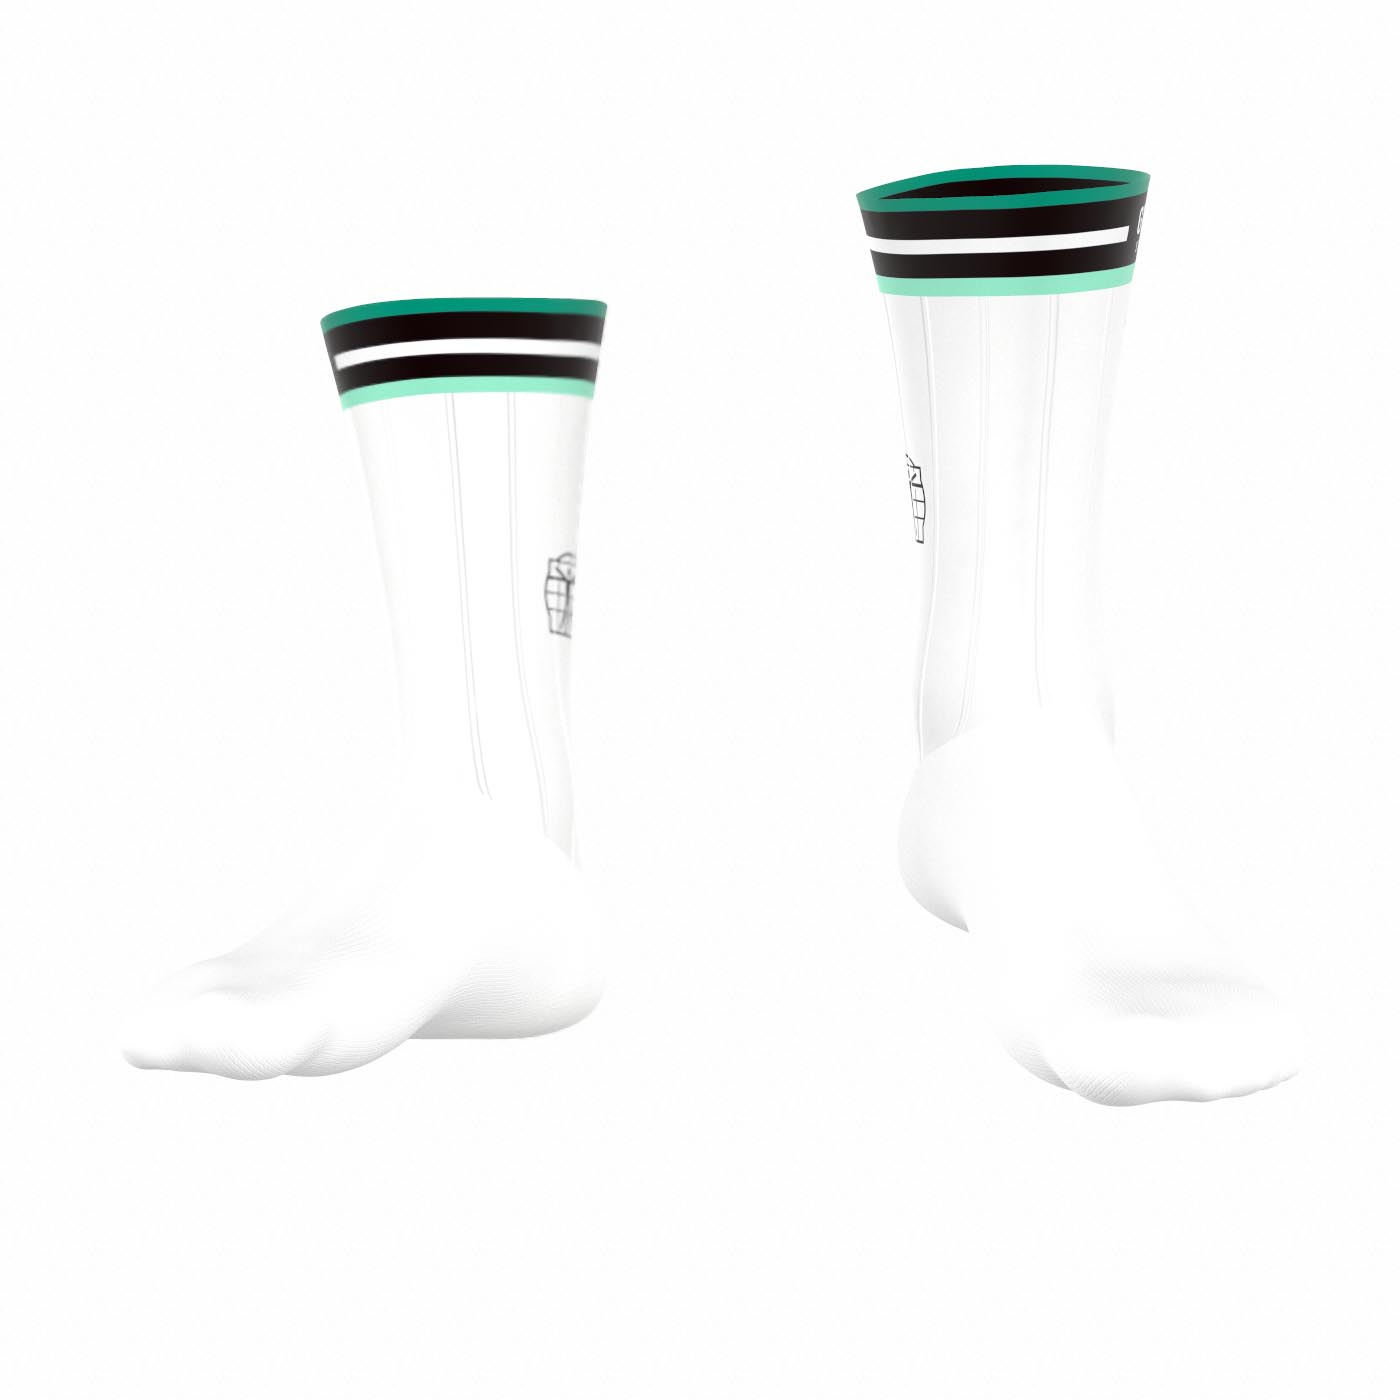 prj20-010121_acc-speedsocks_front